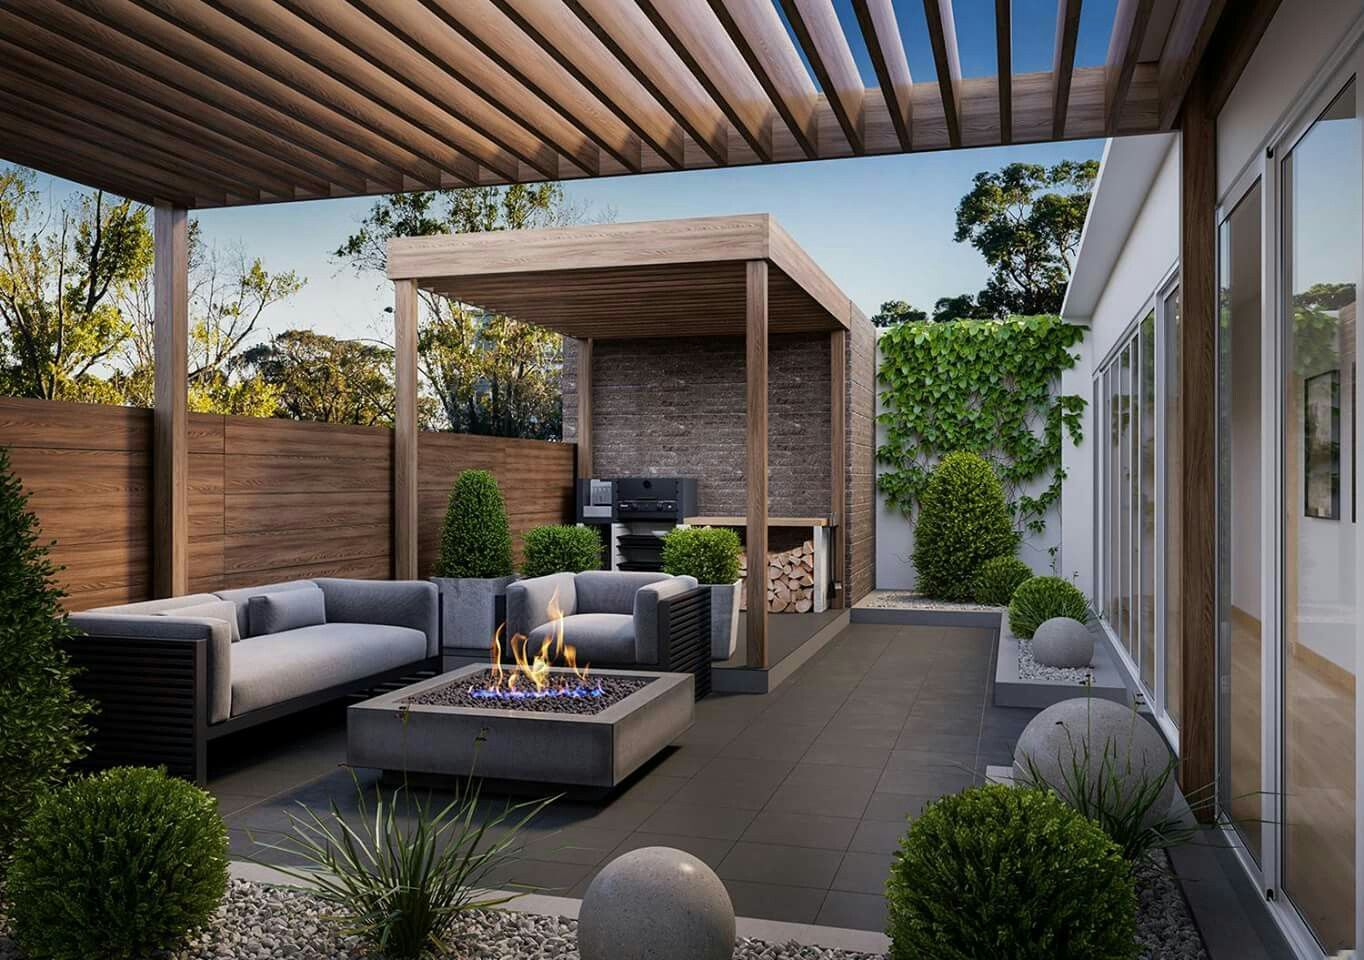 26 Best Rooftop Deck House Ideas | Tiny House Inspiration ... Deck House Designs on house hold designs, house plan steps, house pavement designs, house house designs, house floor designs, house yard designs, house boat designs, house mezzanine designs, house walkway designs, best house designs, house bedroom designs, house with garage on top, www.deck designs, house front design, house plans small lake, house plans with outdoor living areas, house family room designs, house railing designs, house arbor designs, house skylight designs,